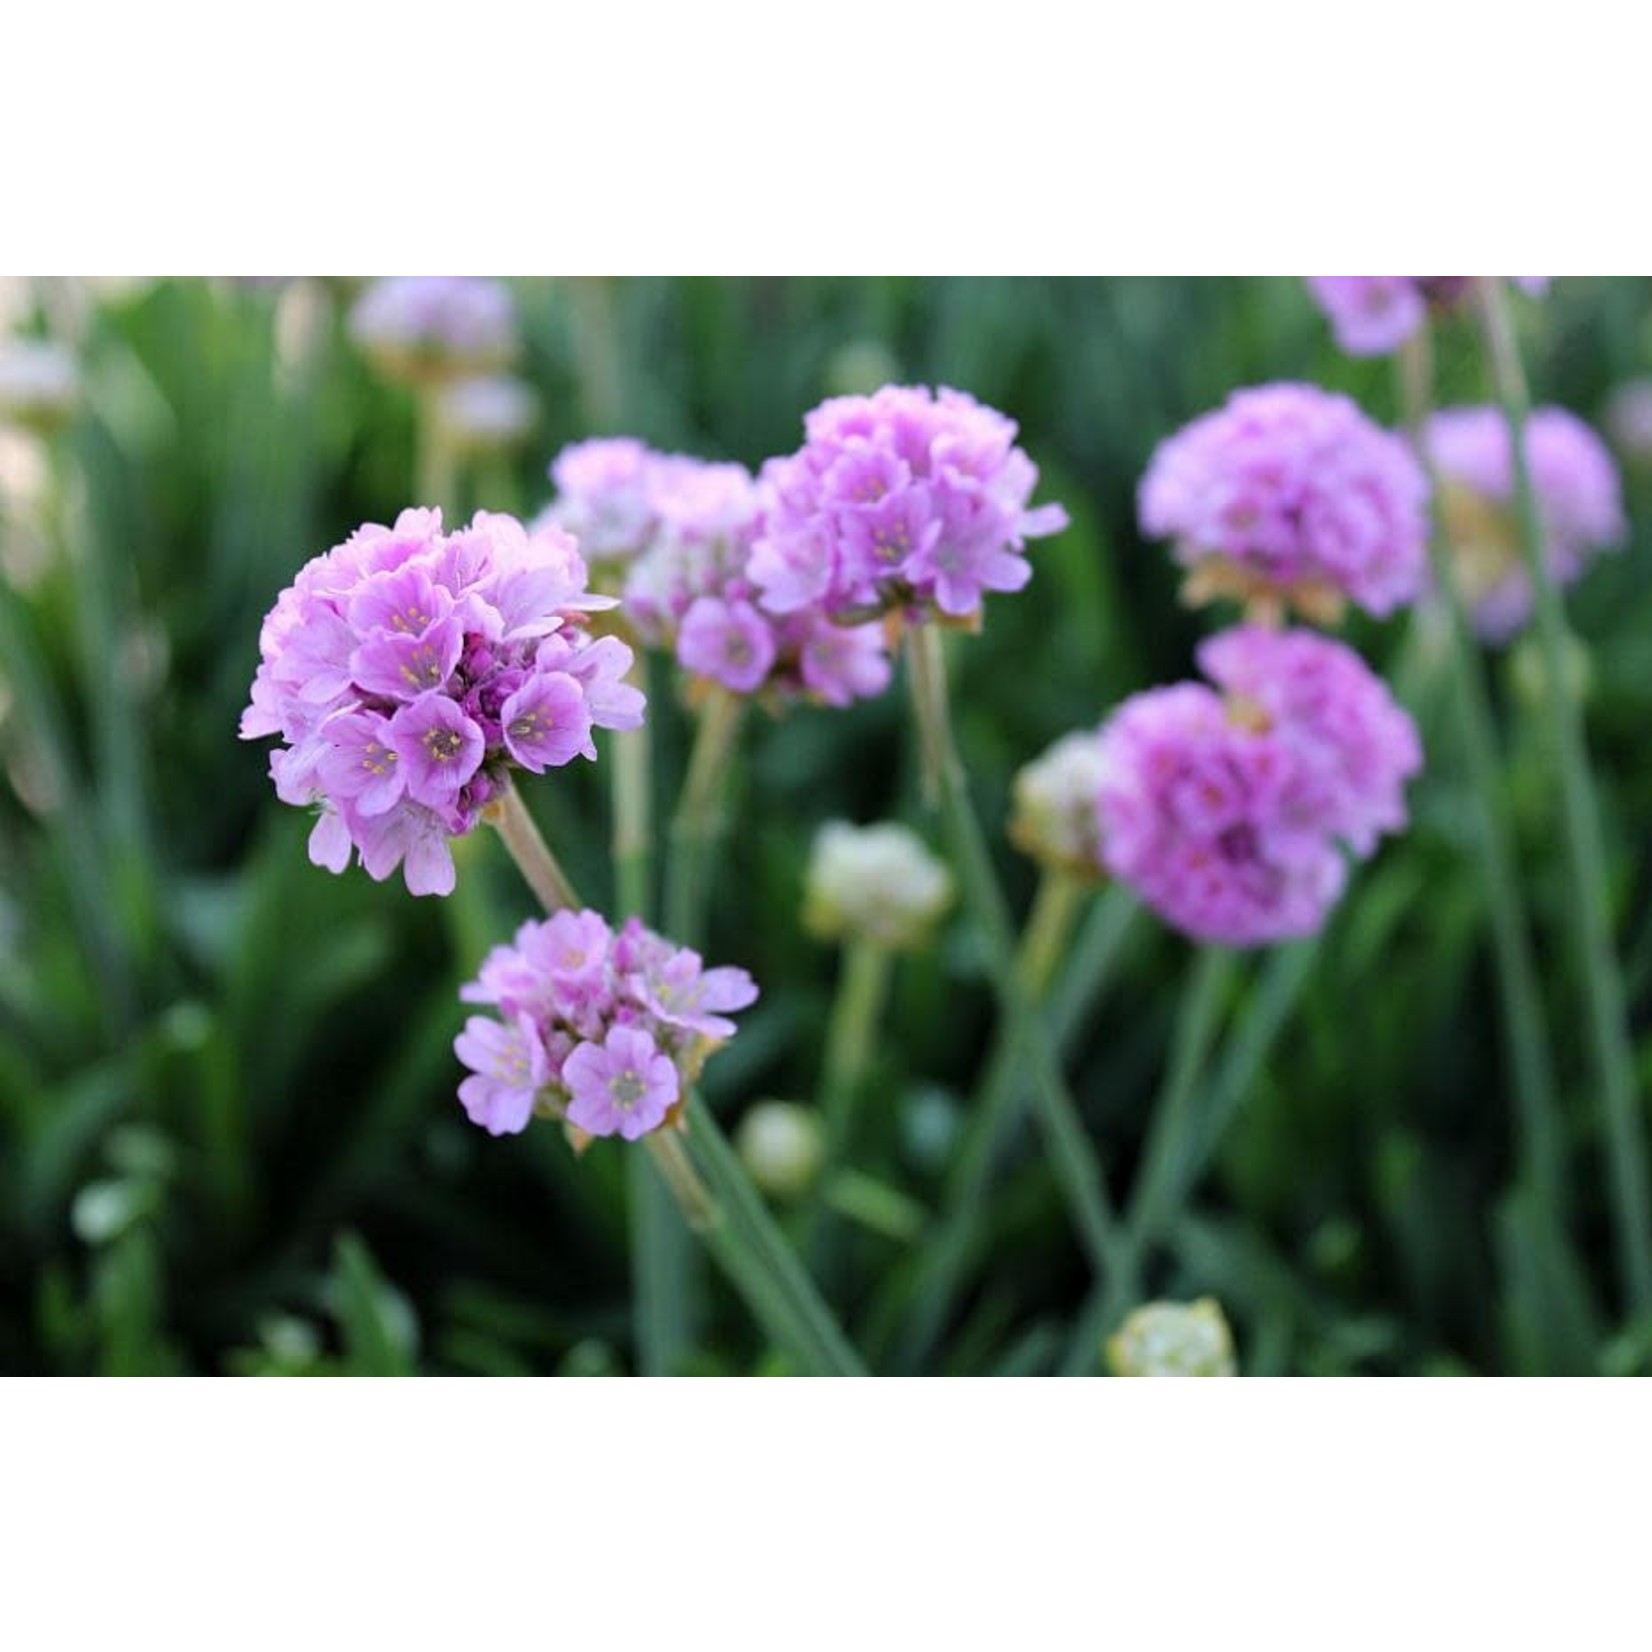 Thrift 'armeria sweet dreams' - 1 gal